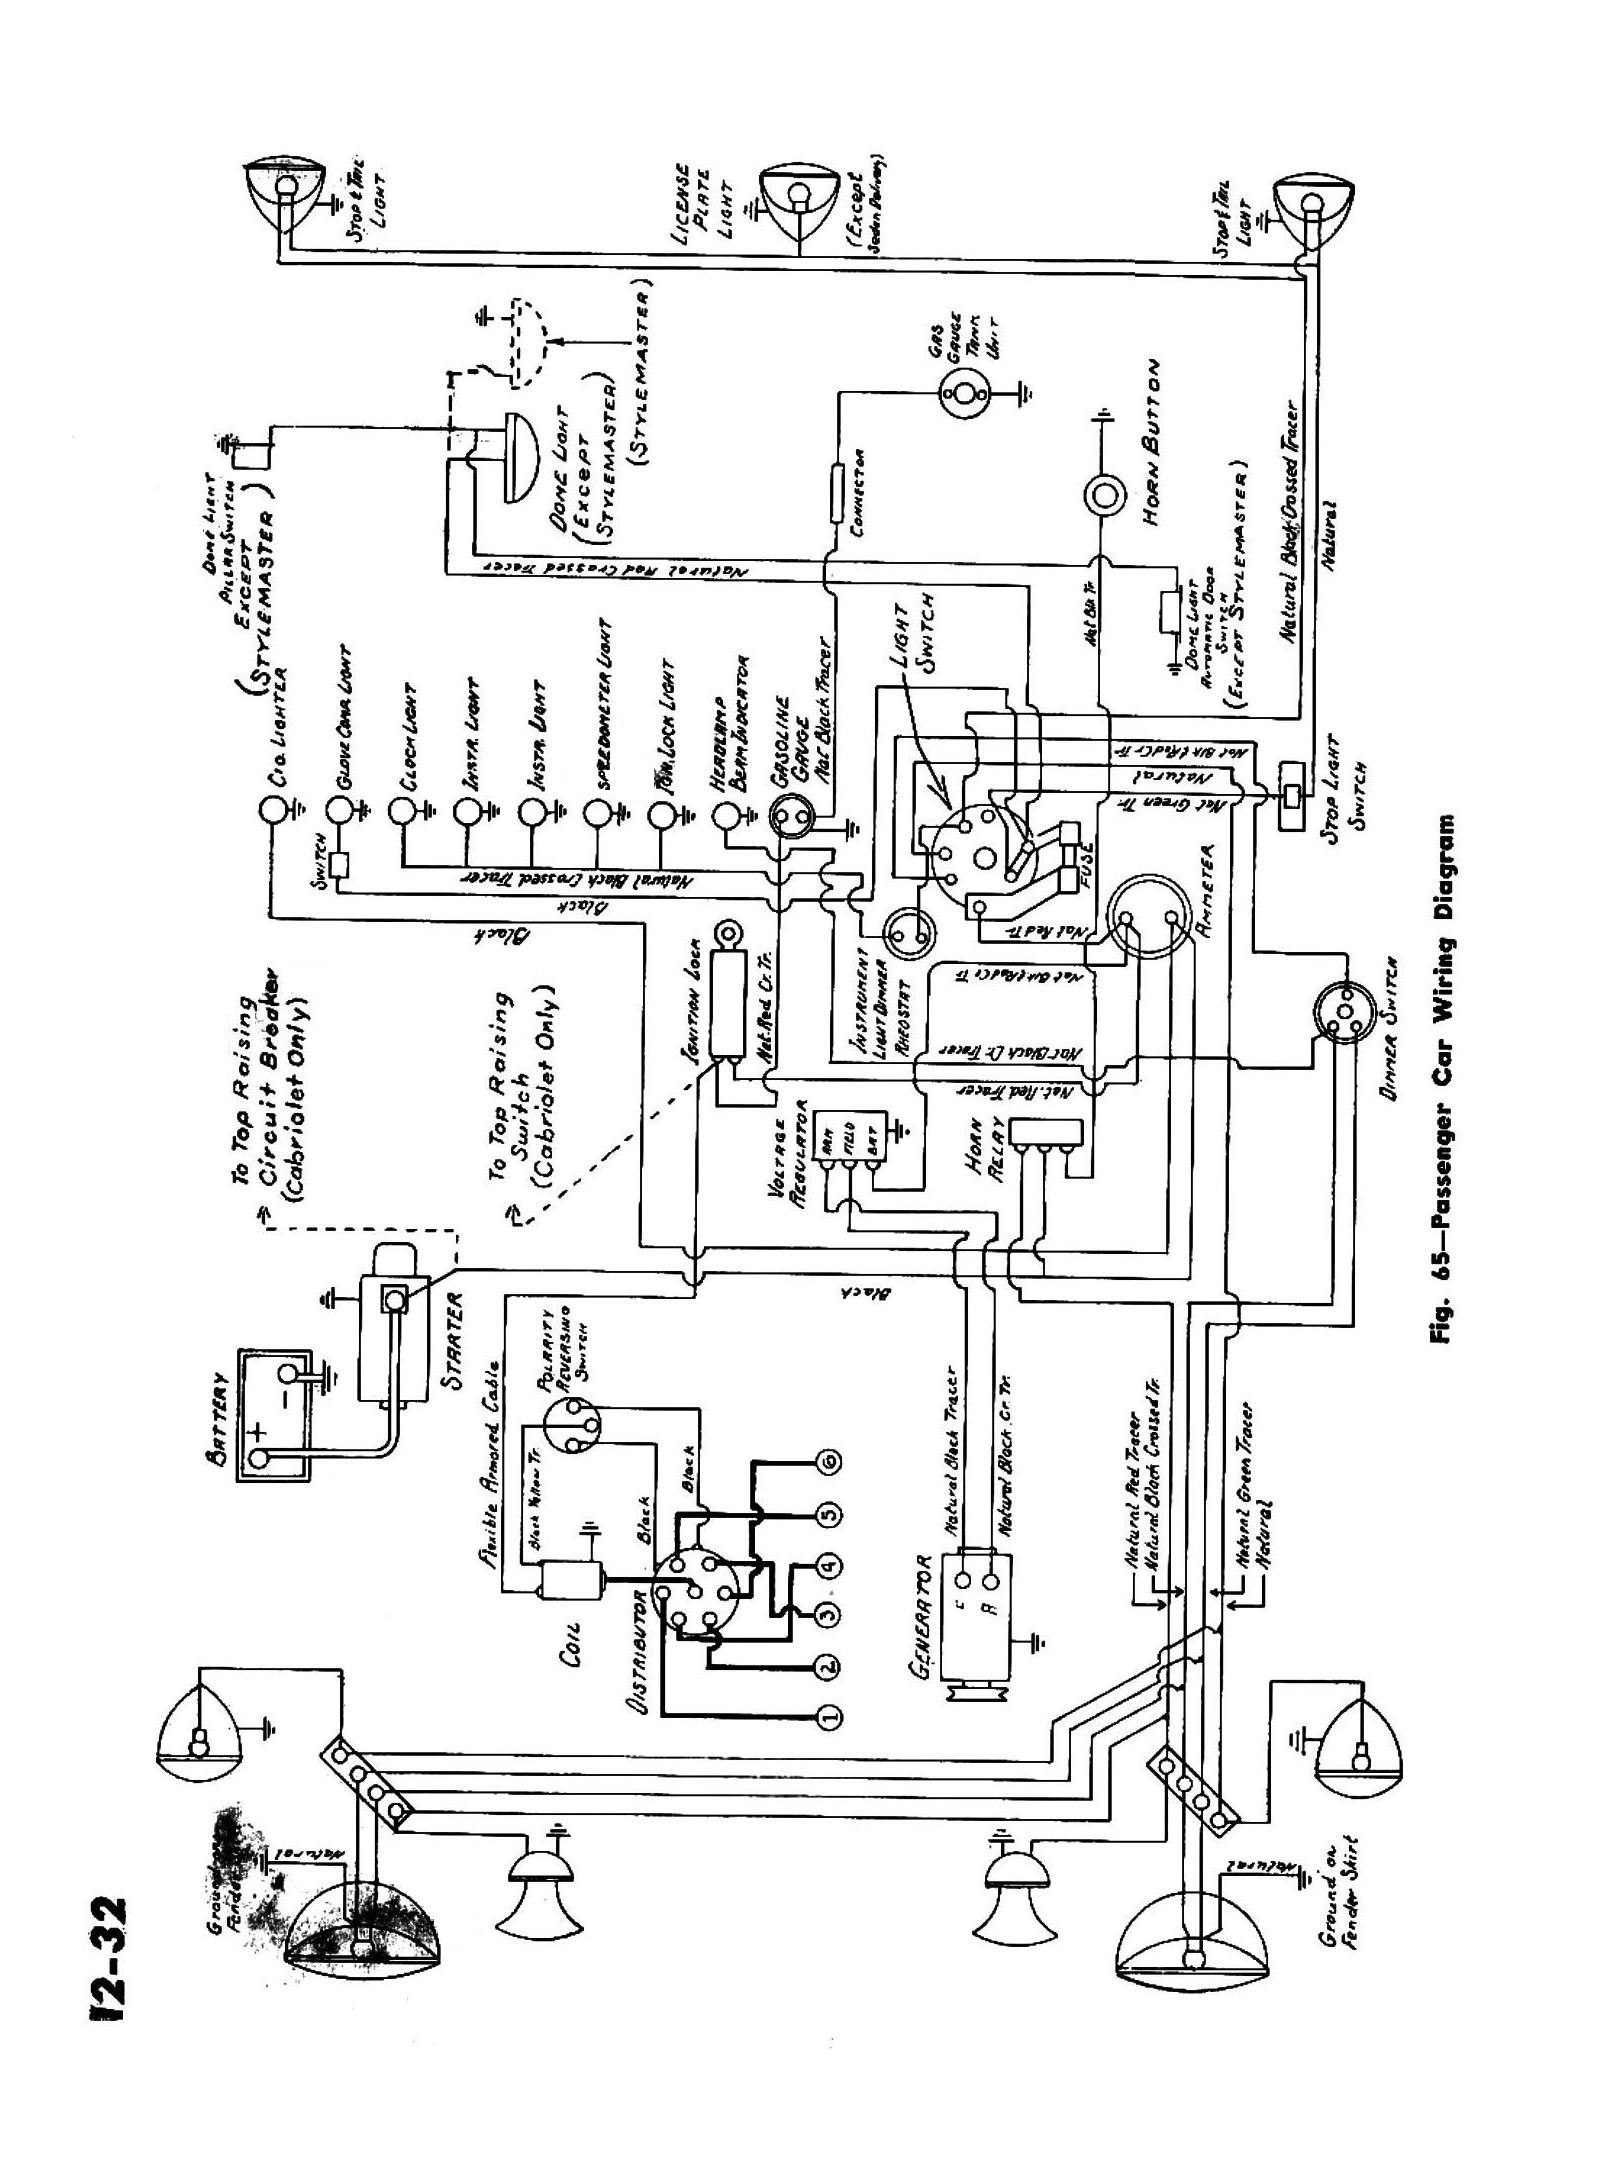 wiring diagram for 1986 chevy truck  wiring  get free